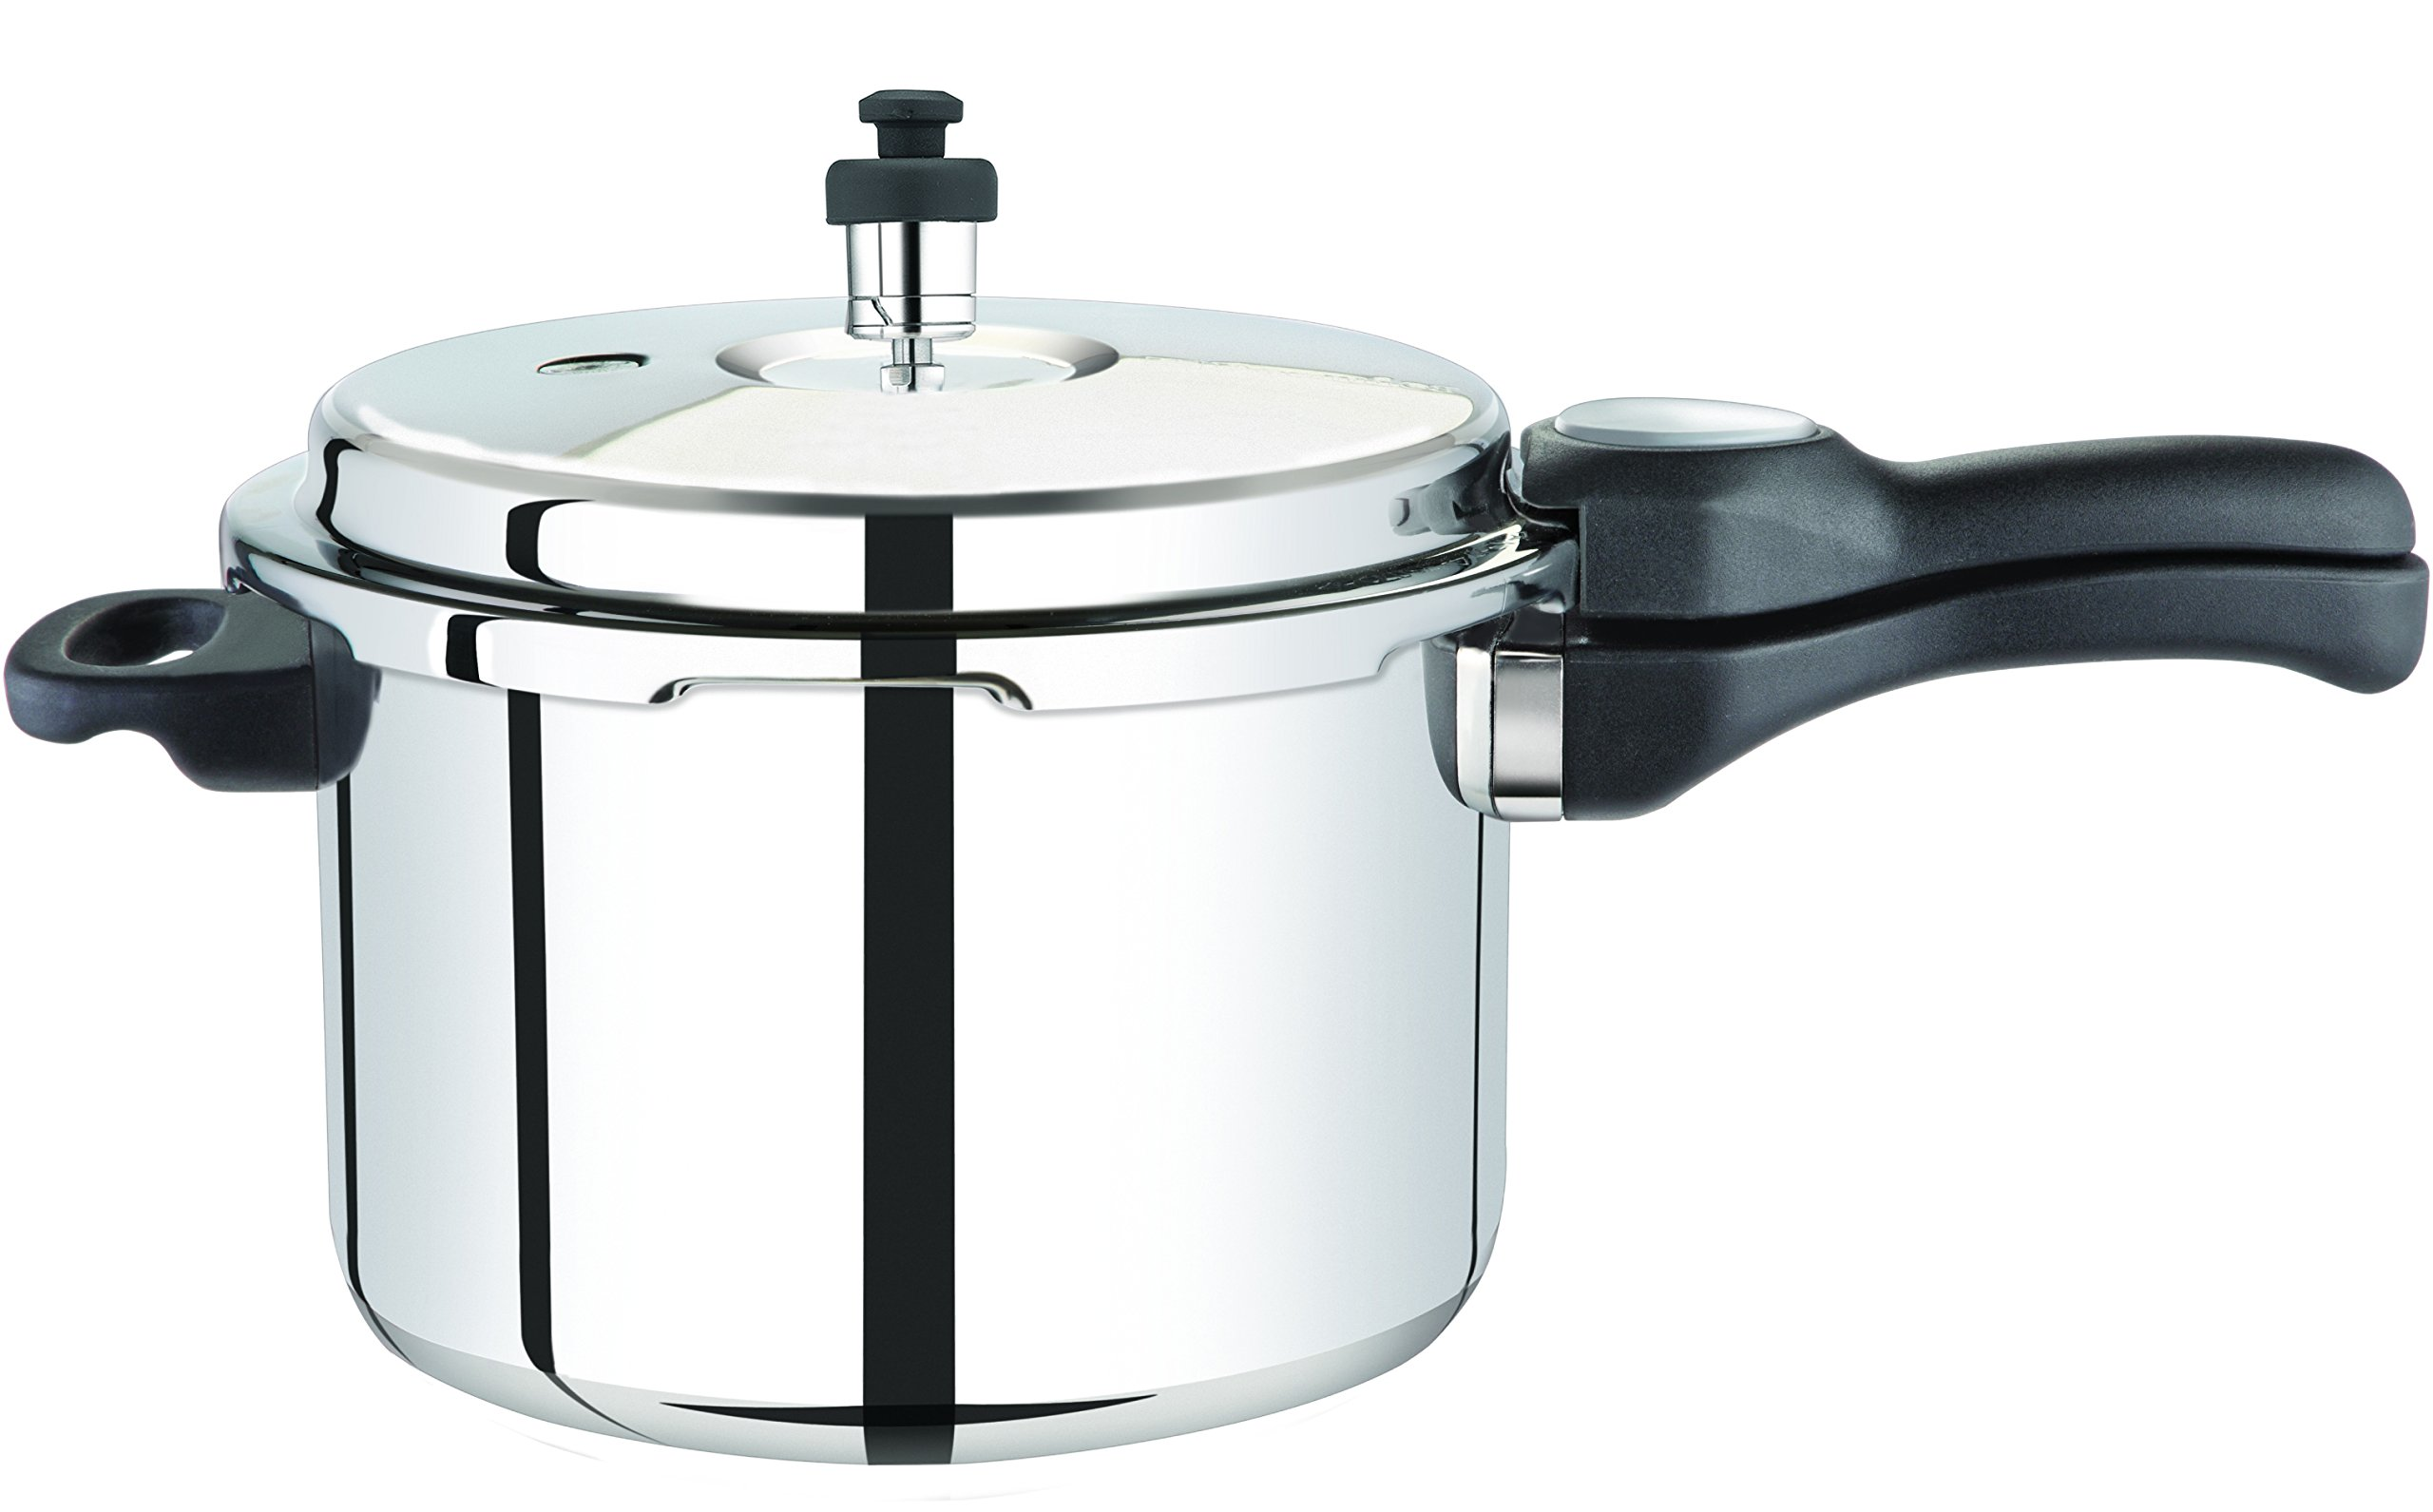 Premier Stainless Steel Pressure Cooker with Aluminum Sandwich Bottom Comfort - Induction Bottom - 5 ltrs. with sep.